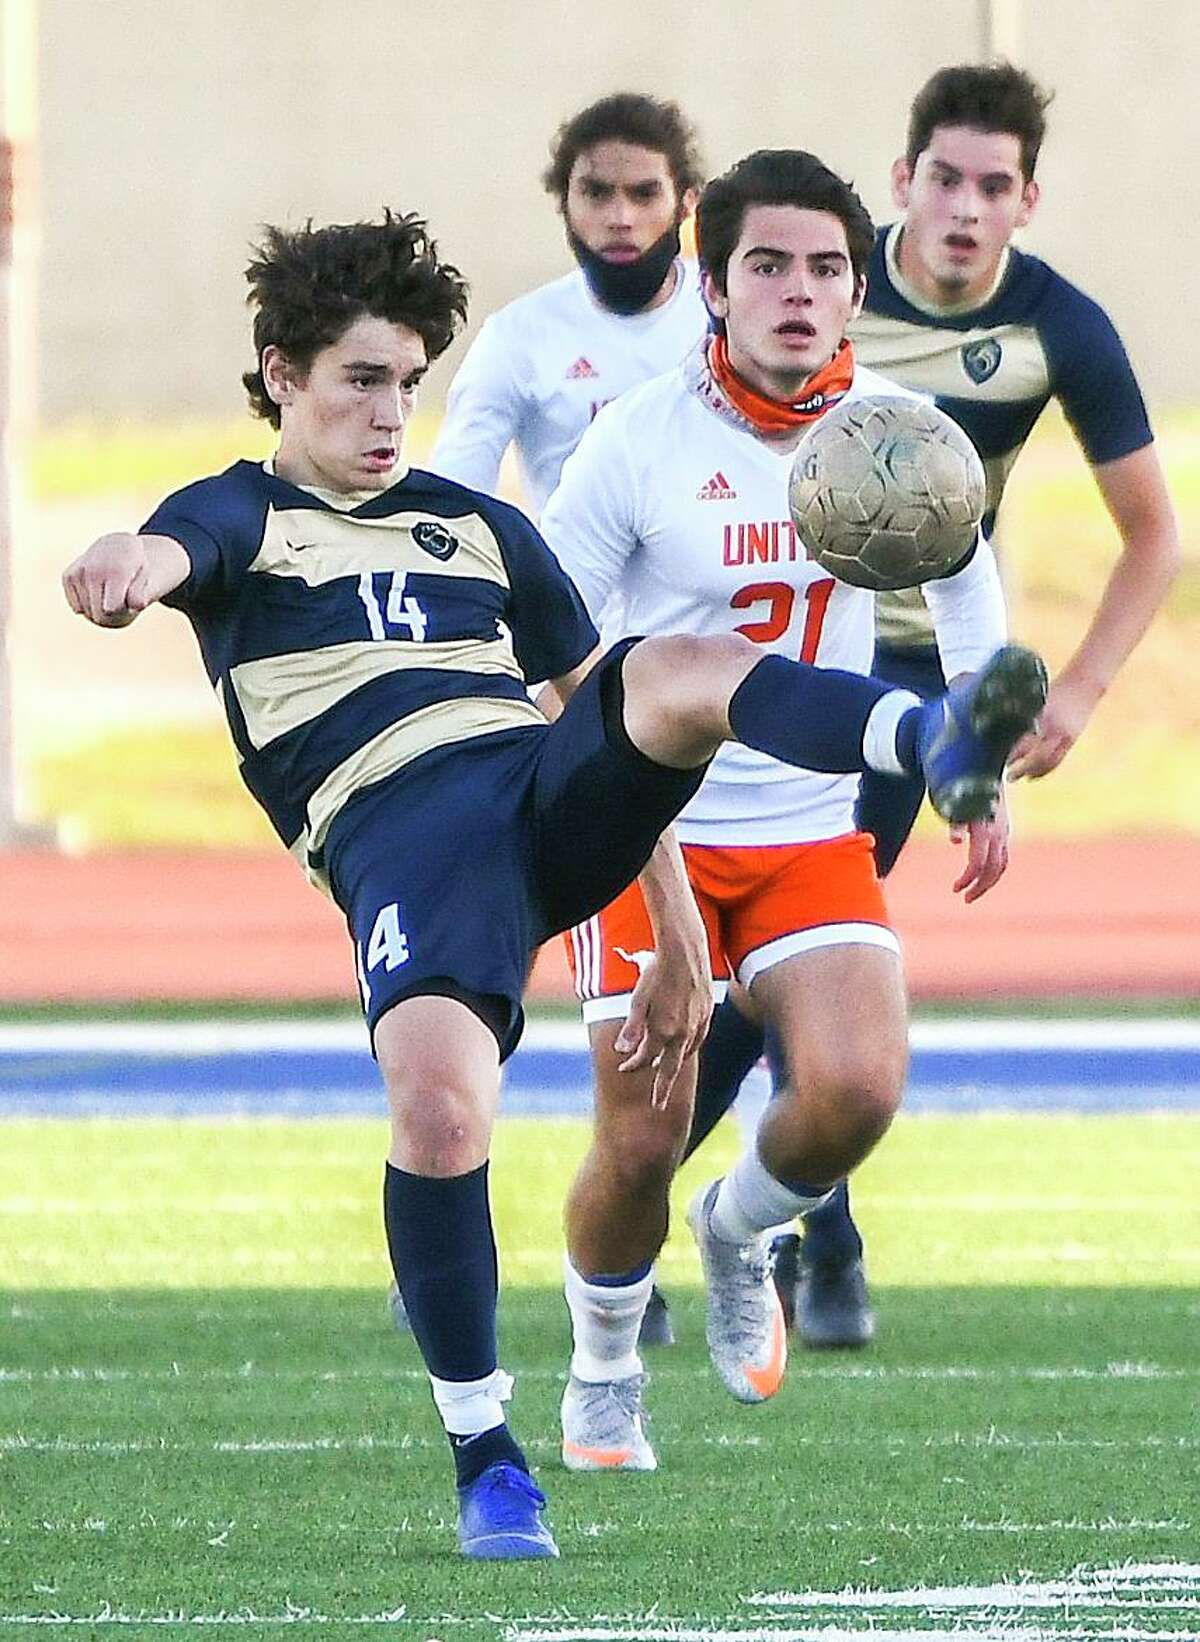 Eloy Cardenas and the Alexander Bulldogs defeated the United Longhorns 2-1 on Wednesday.